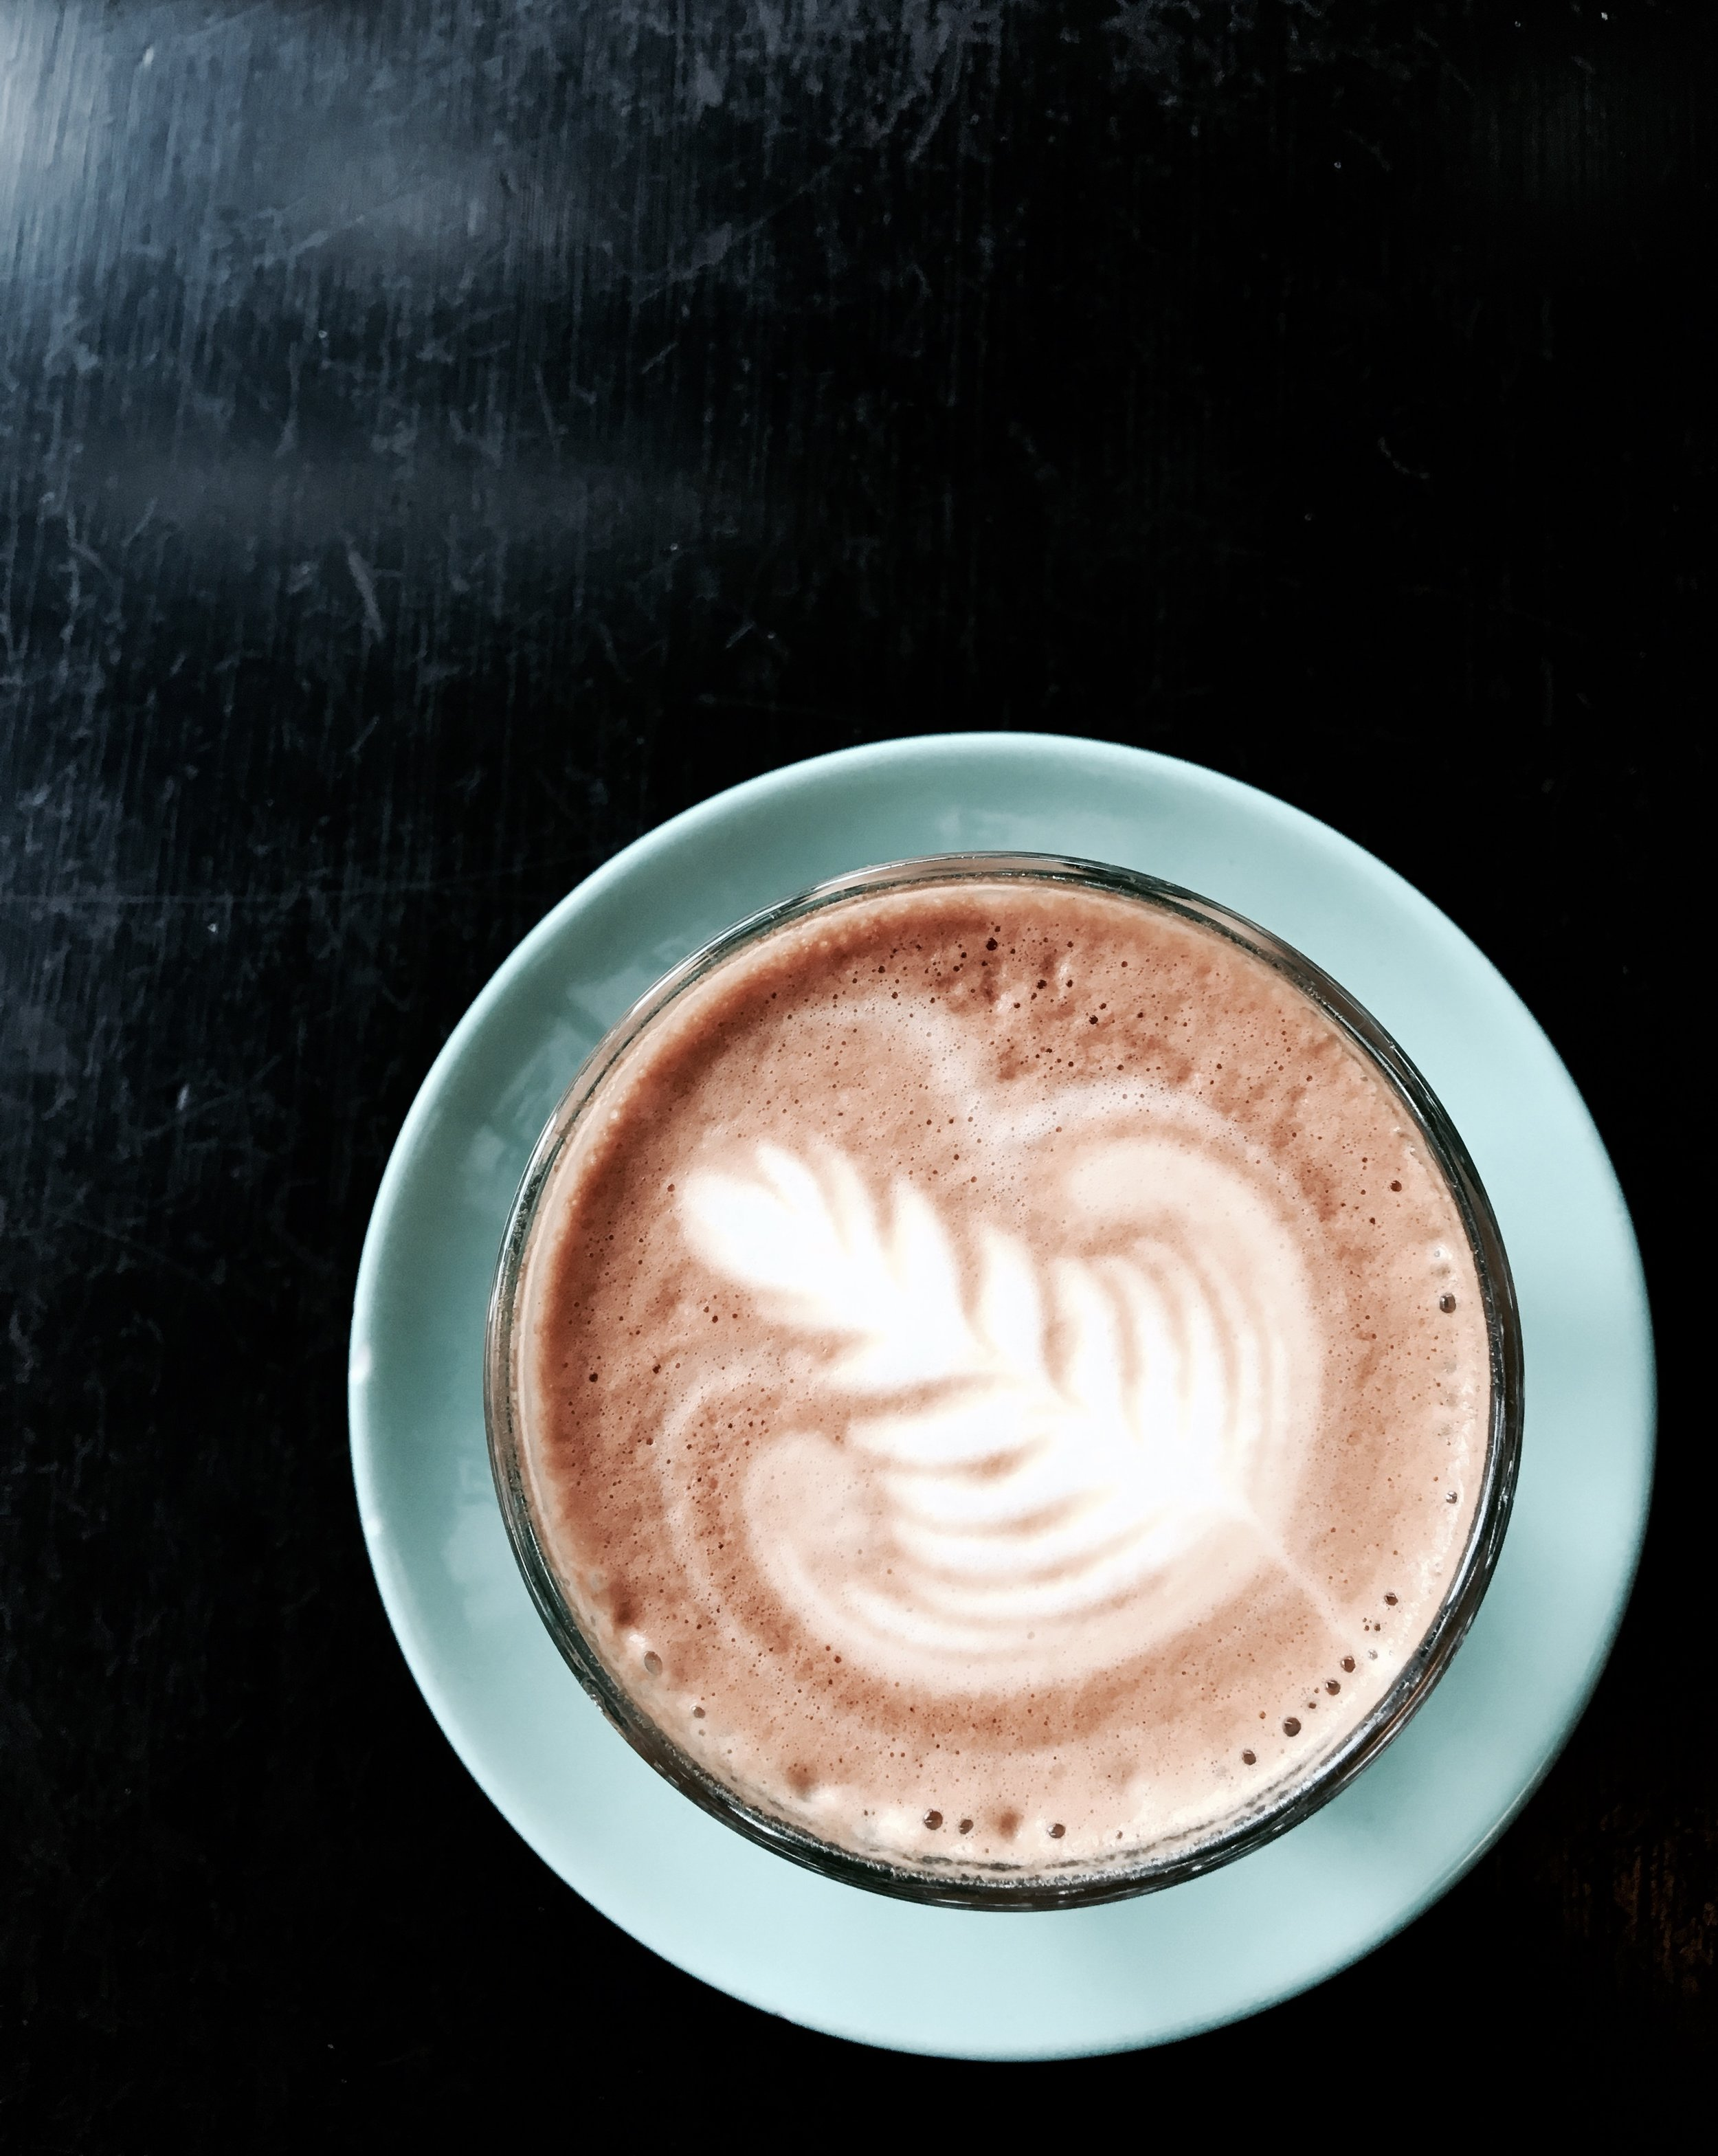 Back to reality with a wonderful cappuccino at Prado Cafe.  Photo: The Vancouverite